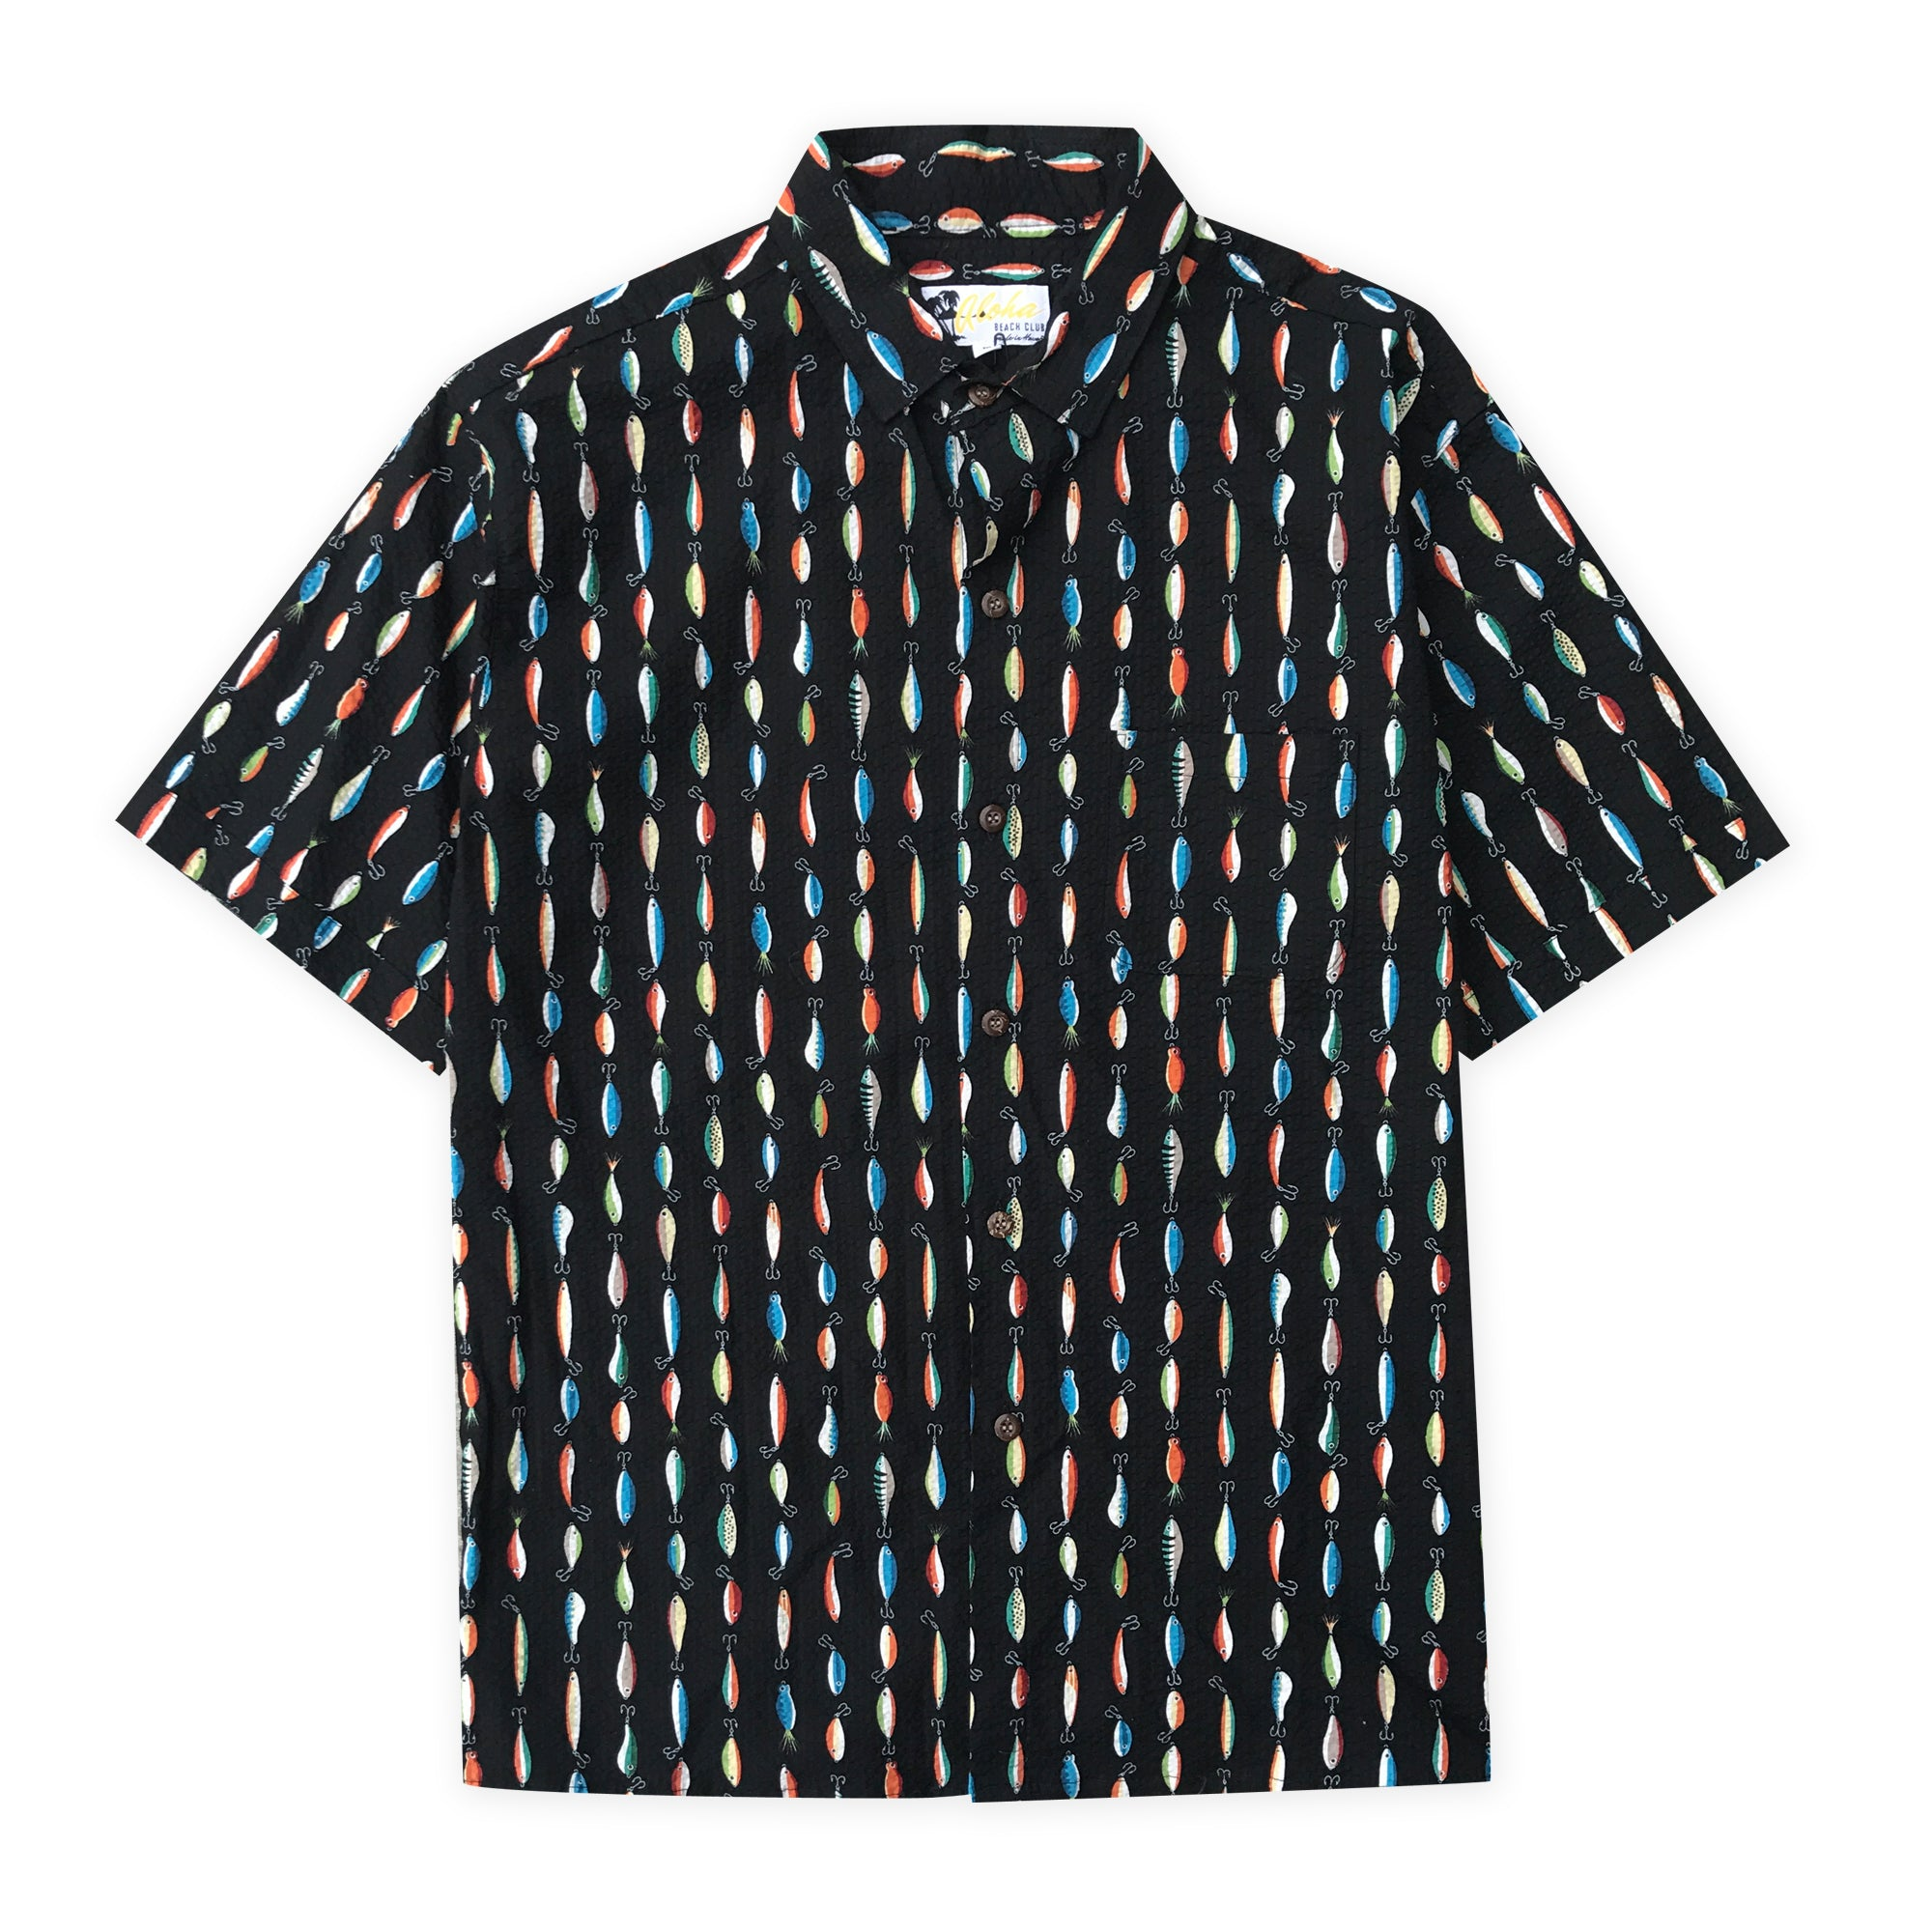 Aloha Beach Club - Del Sur Short Sleeve Aloha Shirt - Aloha Beach Club